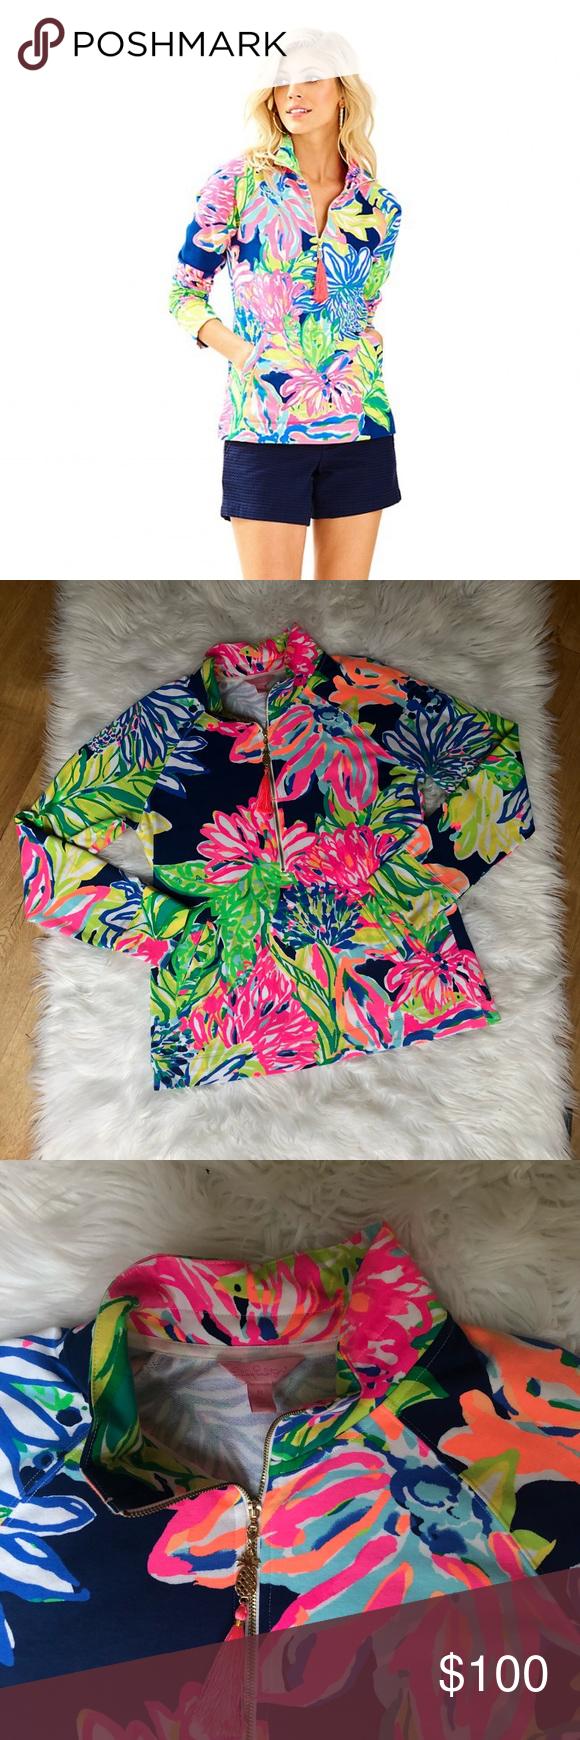 6ba09e908fd309 NWOT Lilly Pulitzer Travelers Palm popover This NWOT Lilly Pulitzer popover  is the pattern Travelers Palm and in perfect condition.